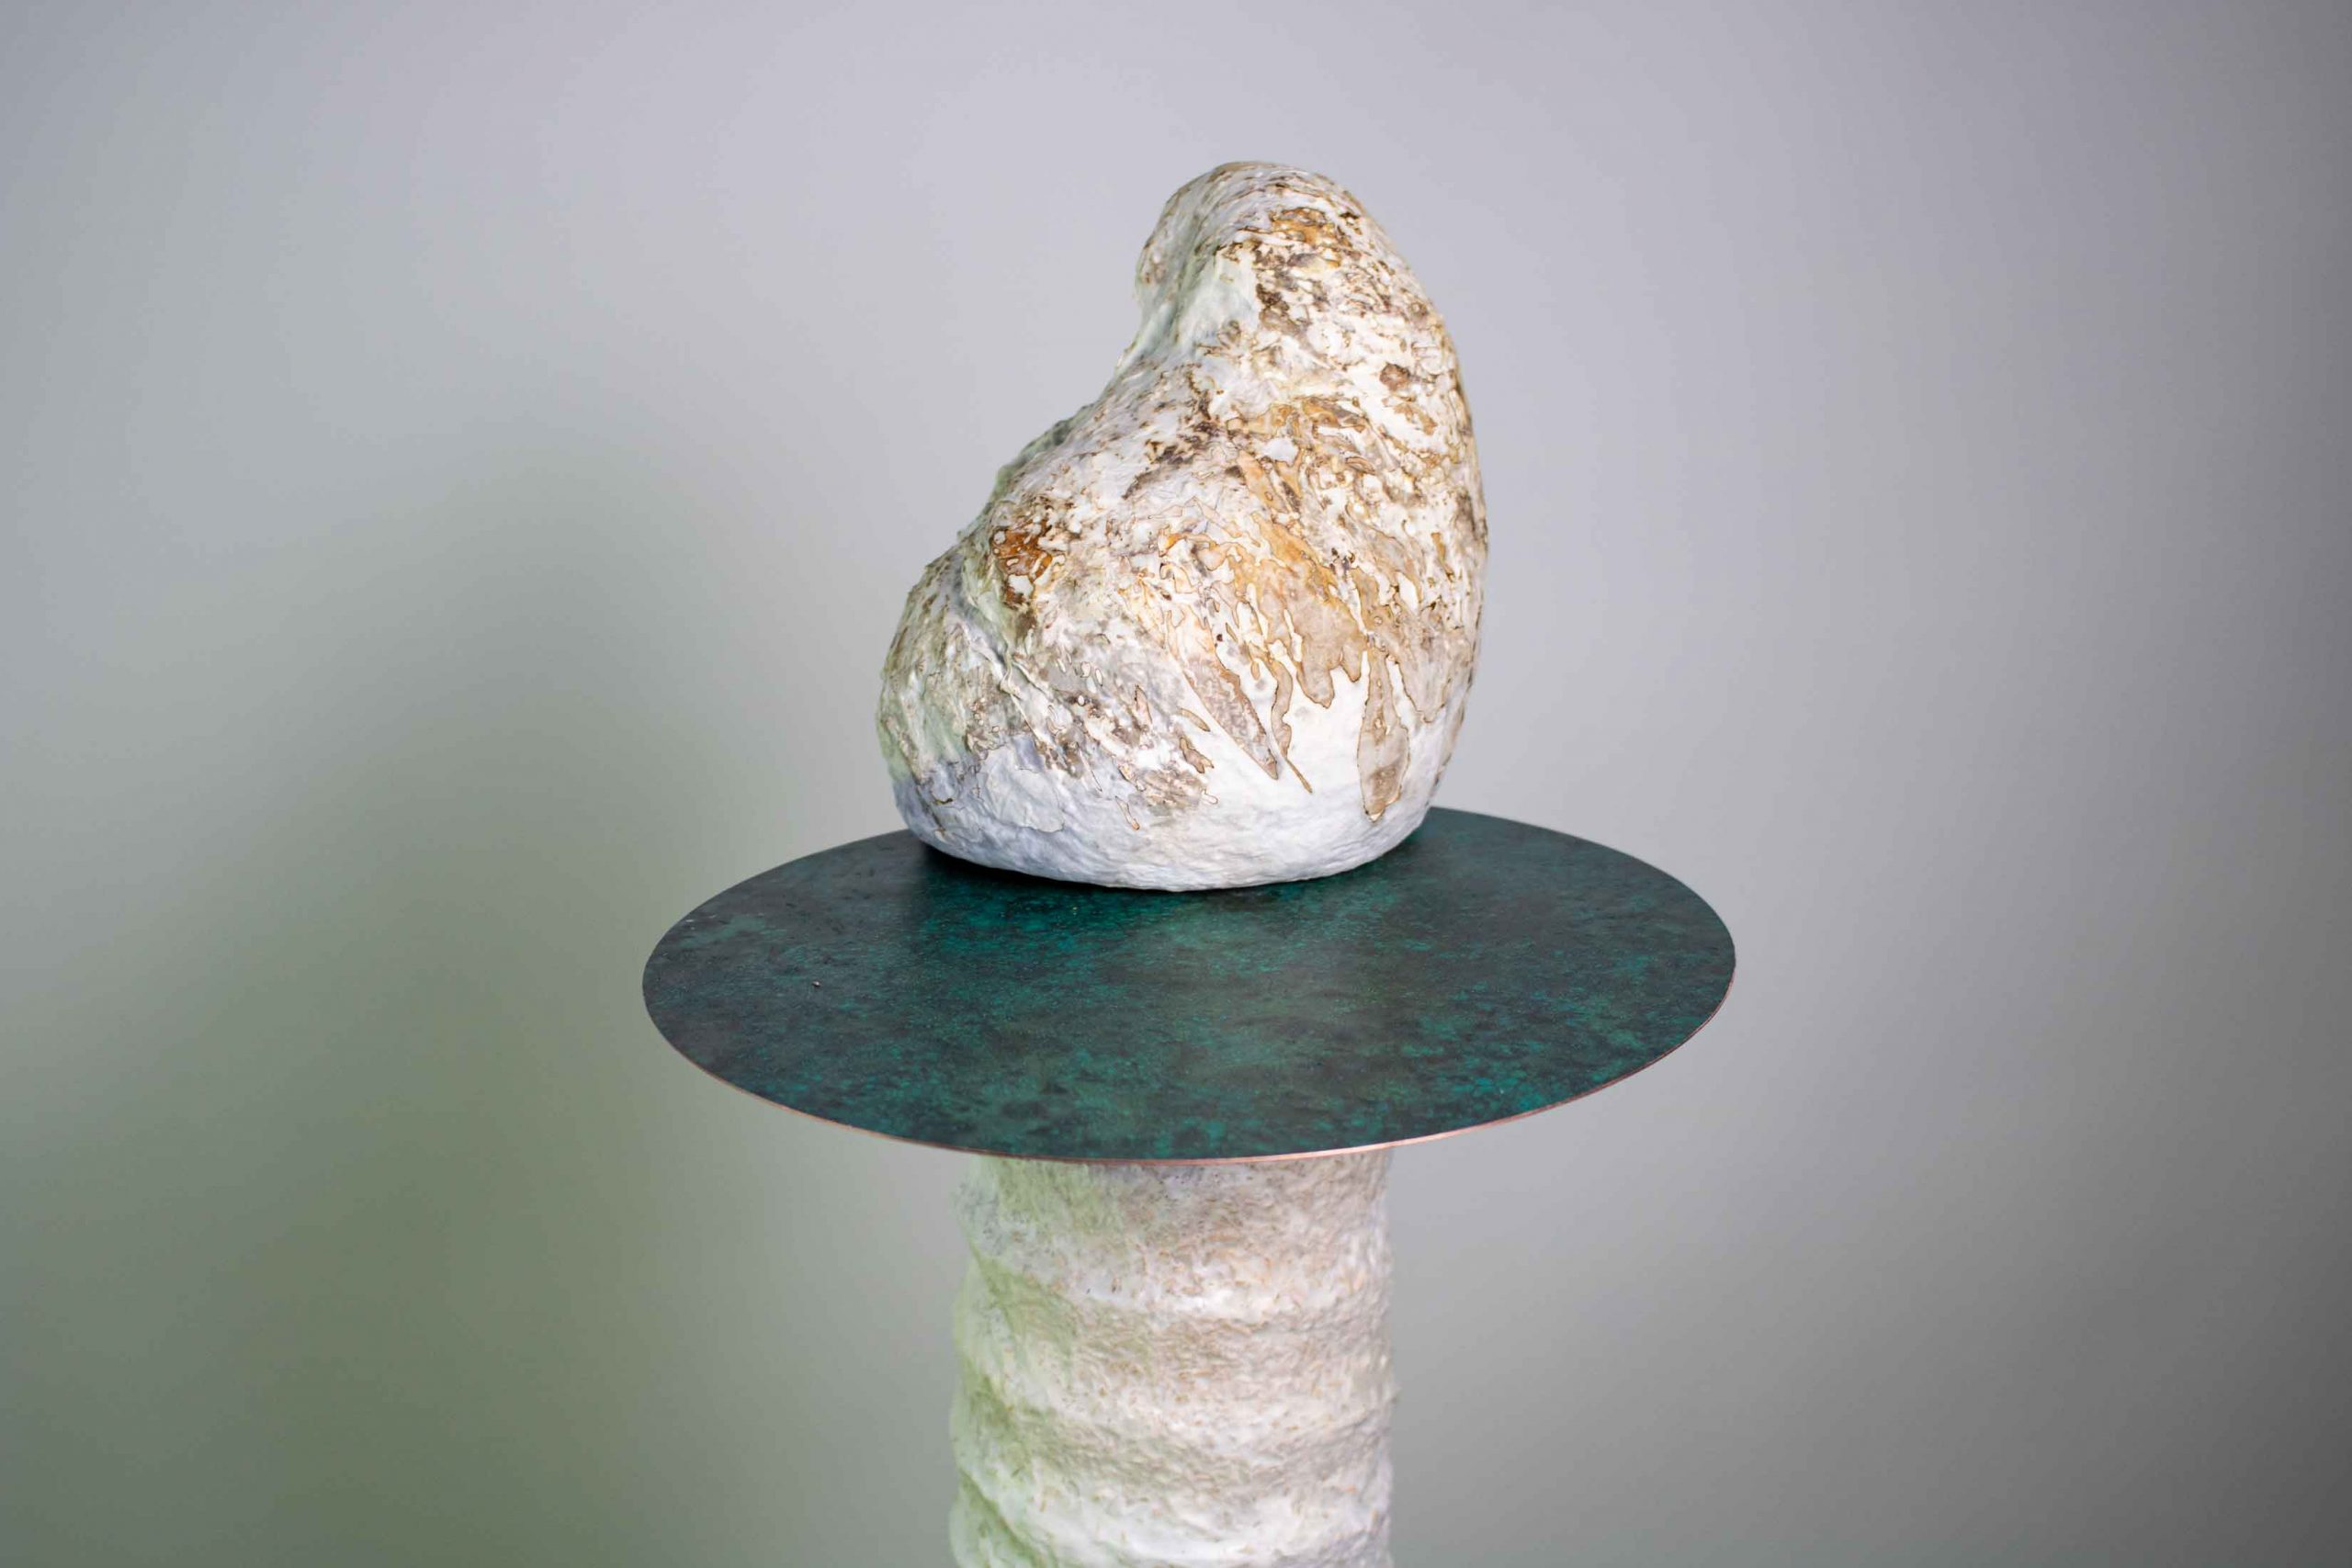 Detail of small white organic shaped sculptures balanced on a round copper plate sitting on top of a post-like structure.